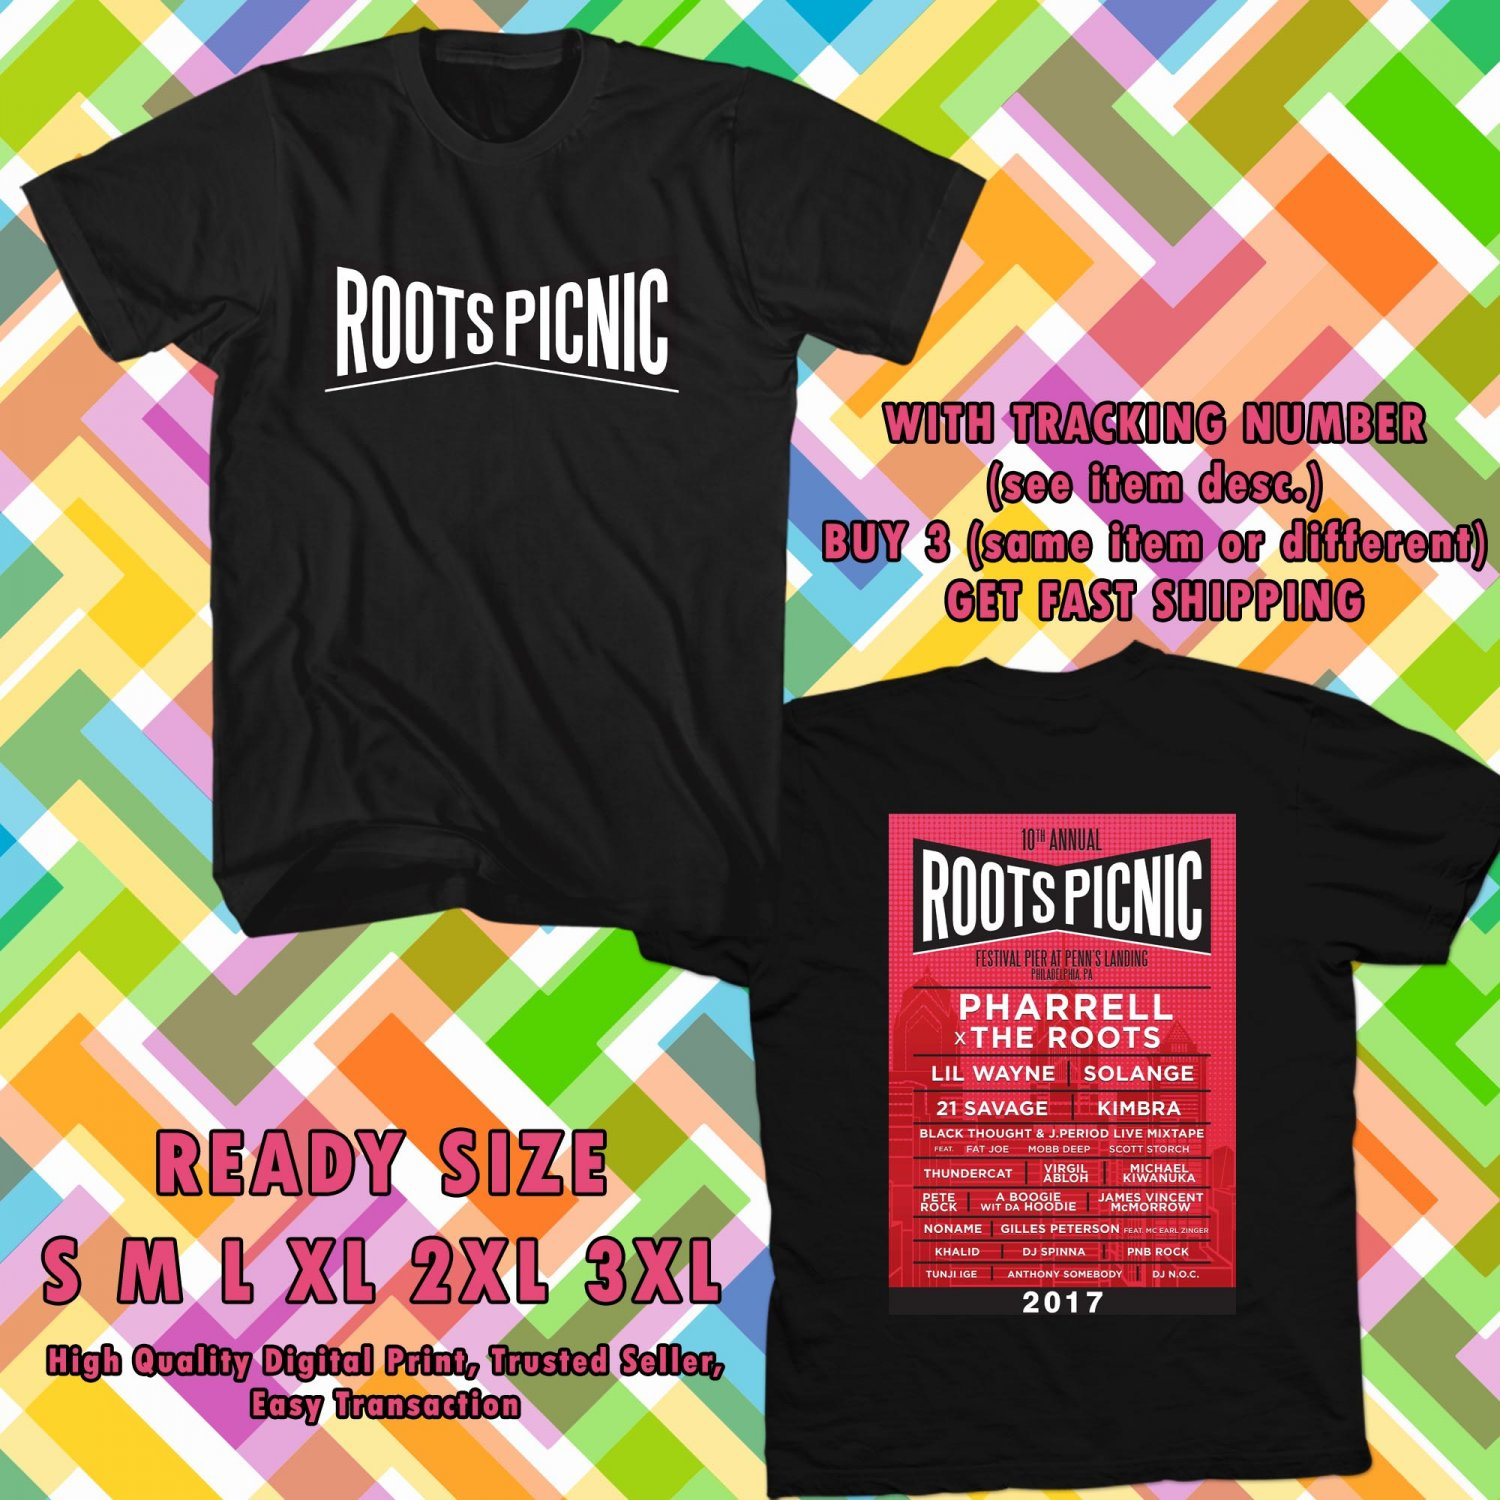 HITS ROOTS PICNIC FEST JUNE 2017 BLACK TEE'S 2SIDE MAN WOMEN ASTR